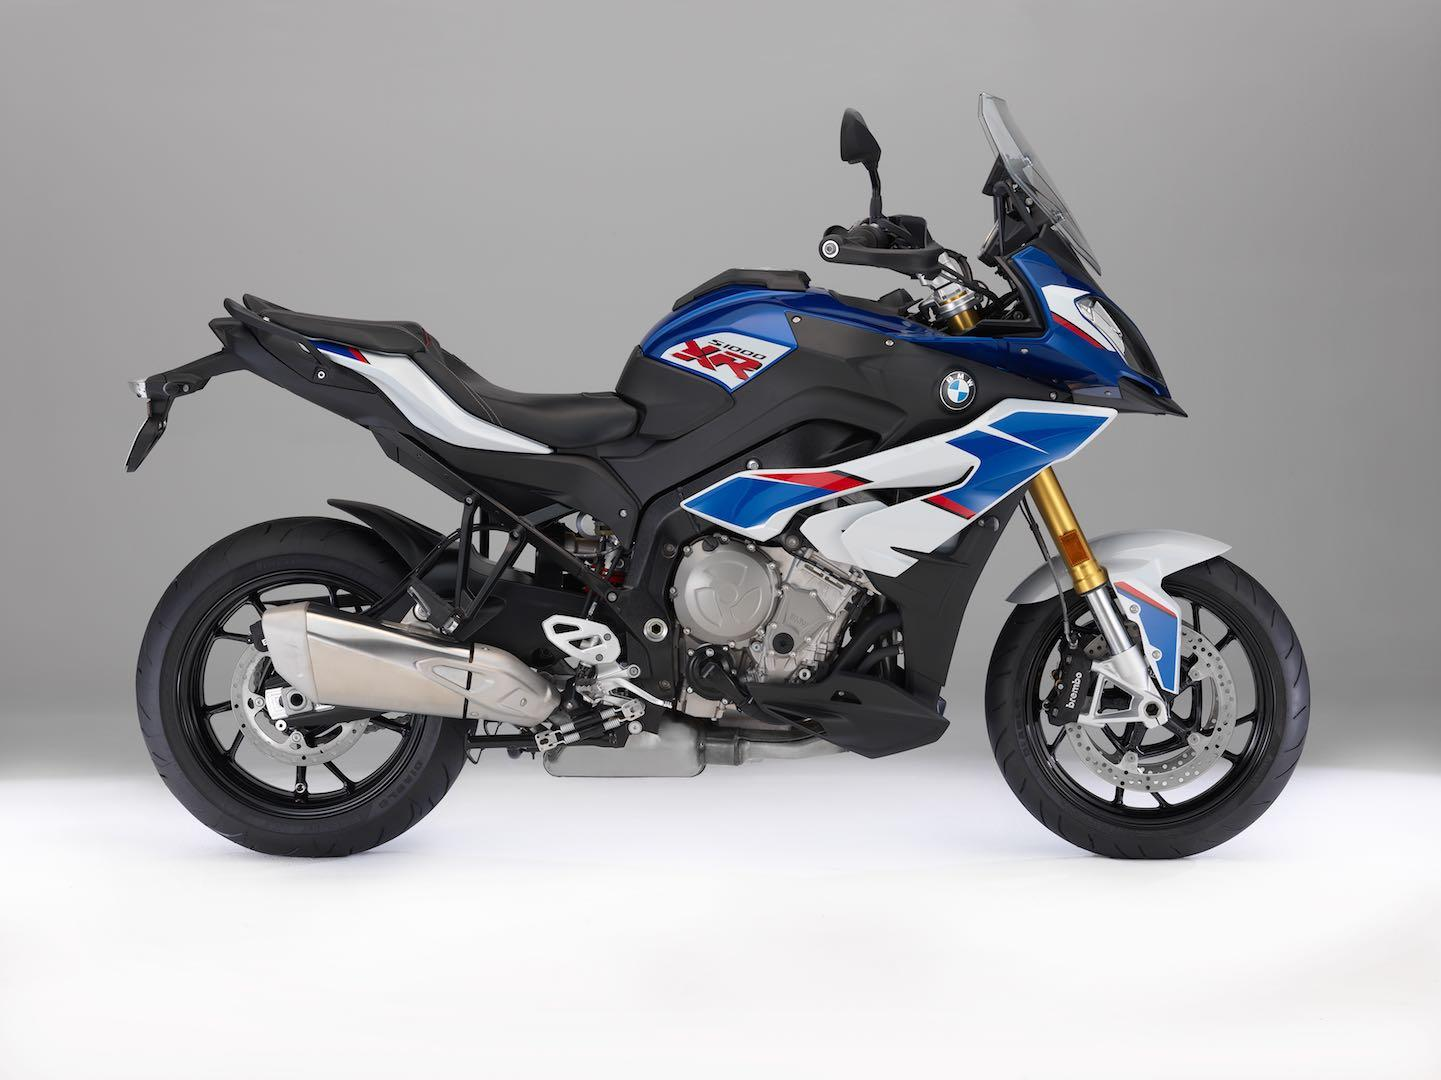 Image result for BMW S 1000 XR. top sp[eed